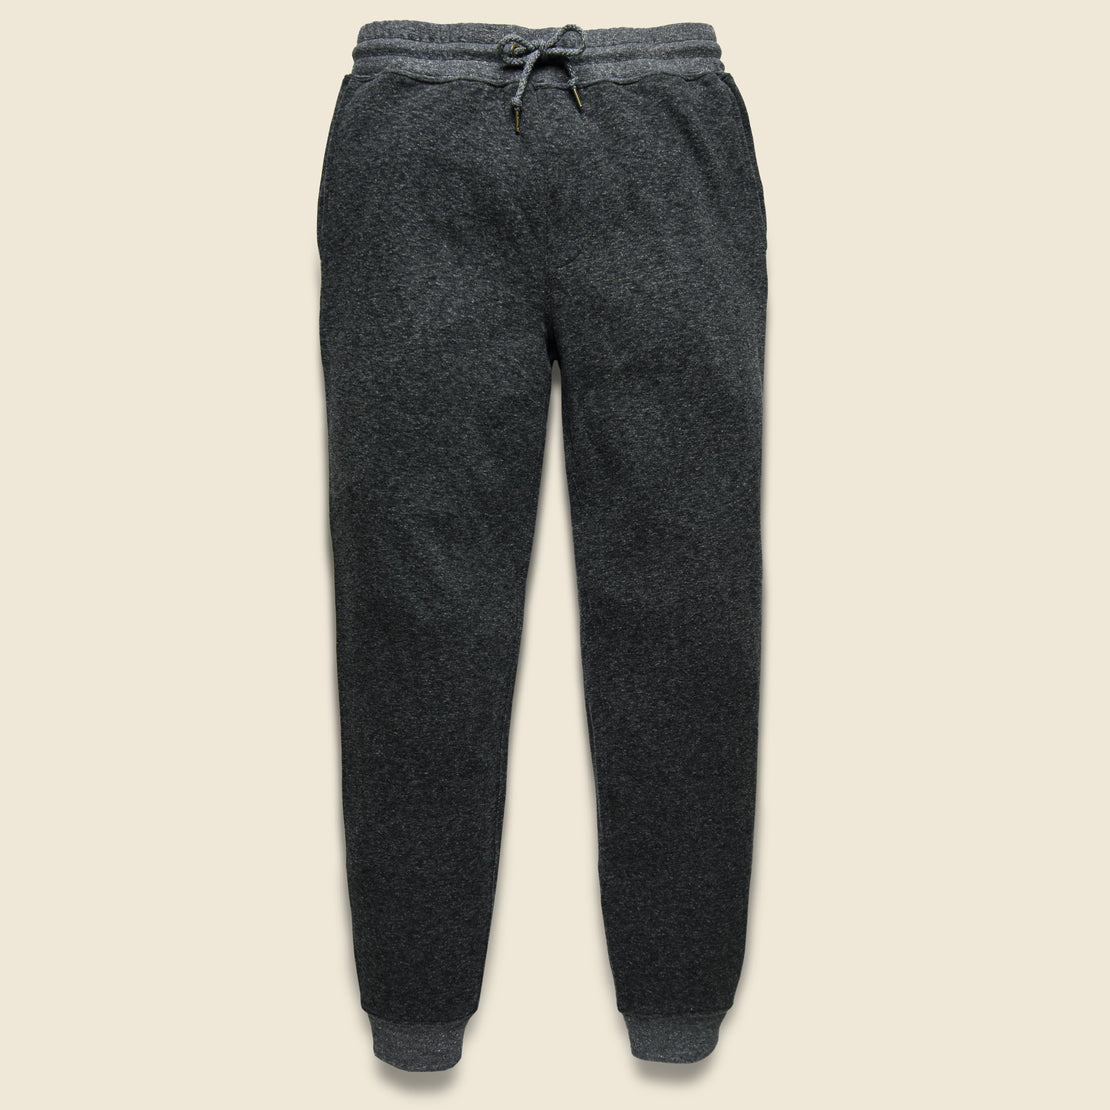 Faherty Dual Knit Sweatpant - Washed Black